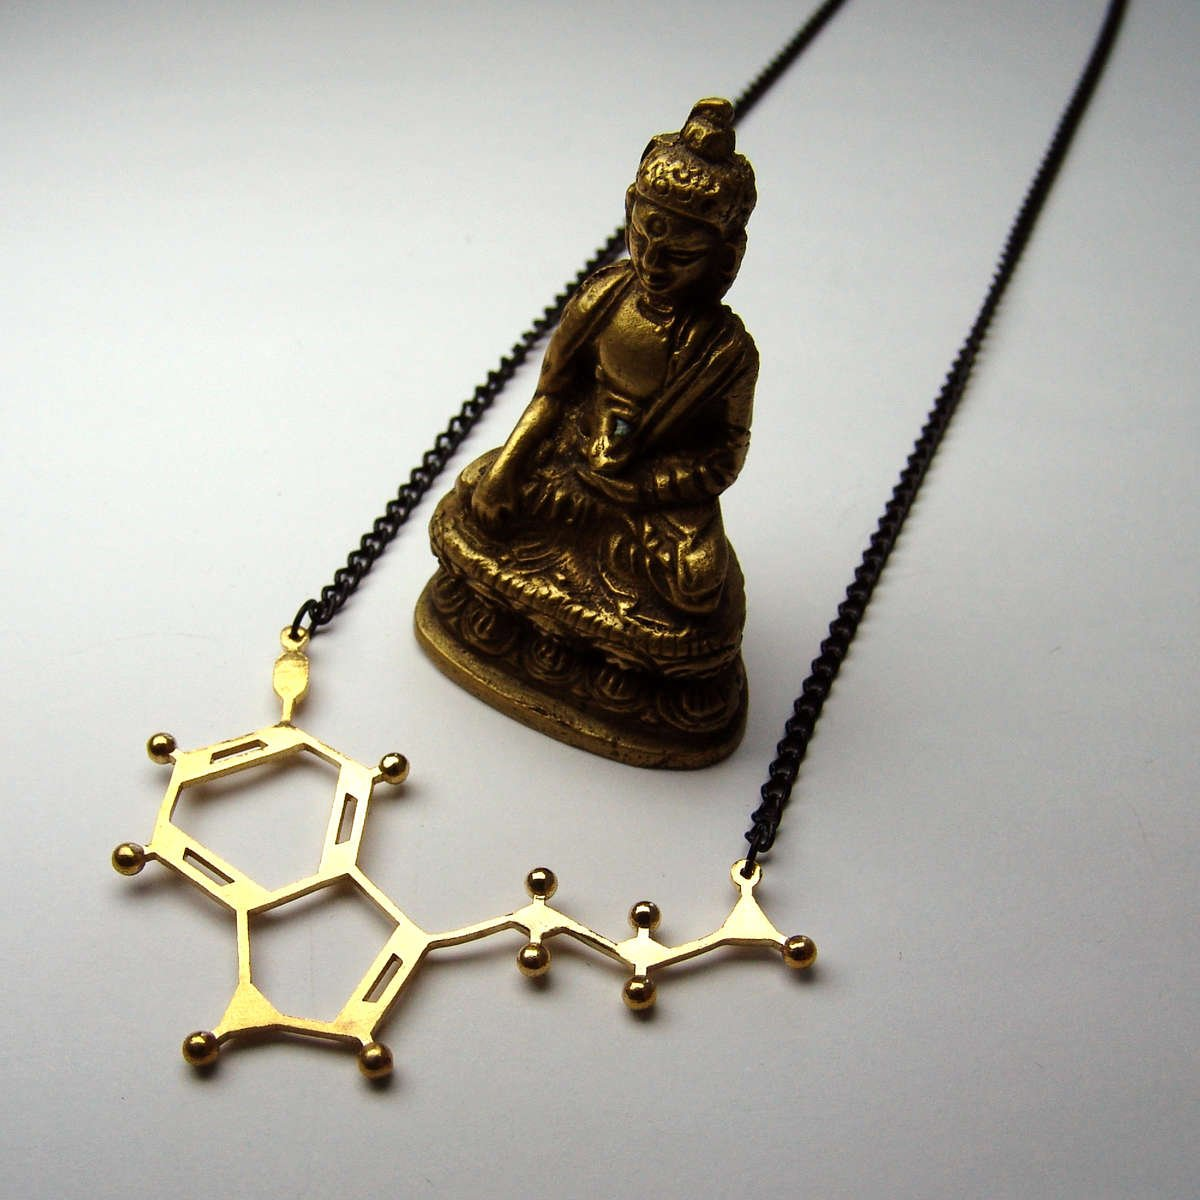 Serotonin pendant with a music score